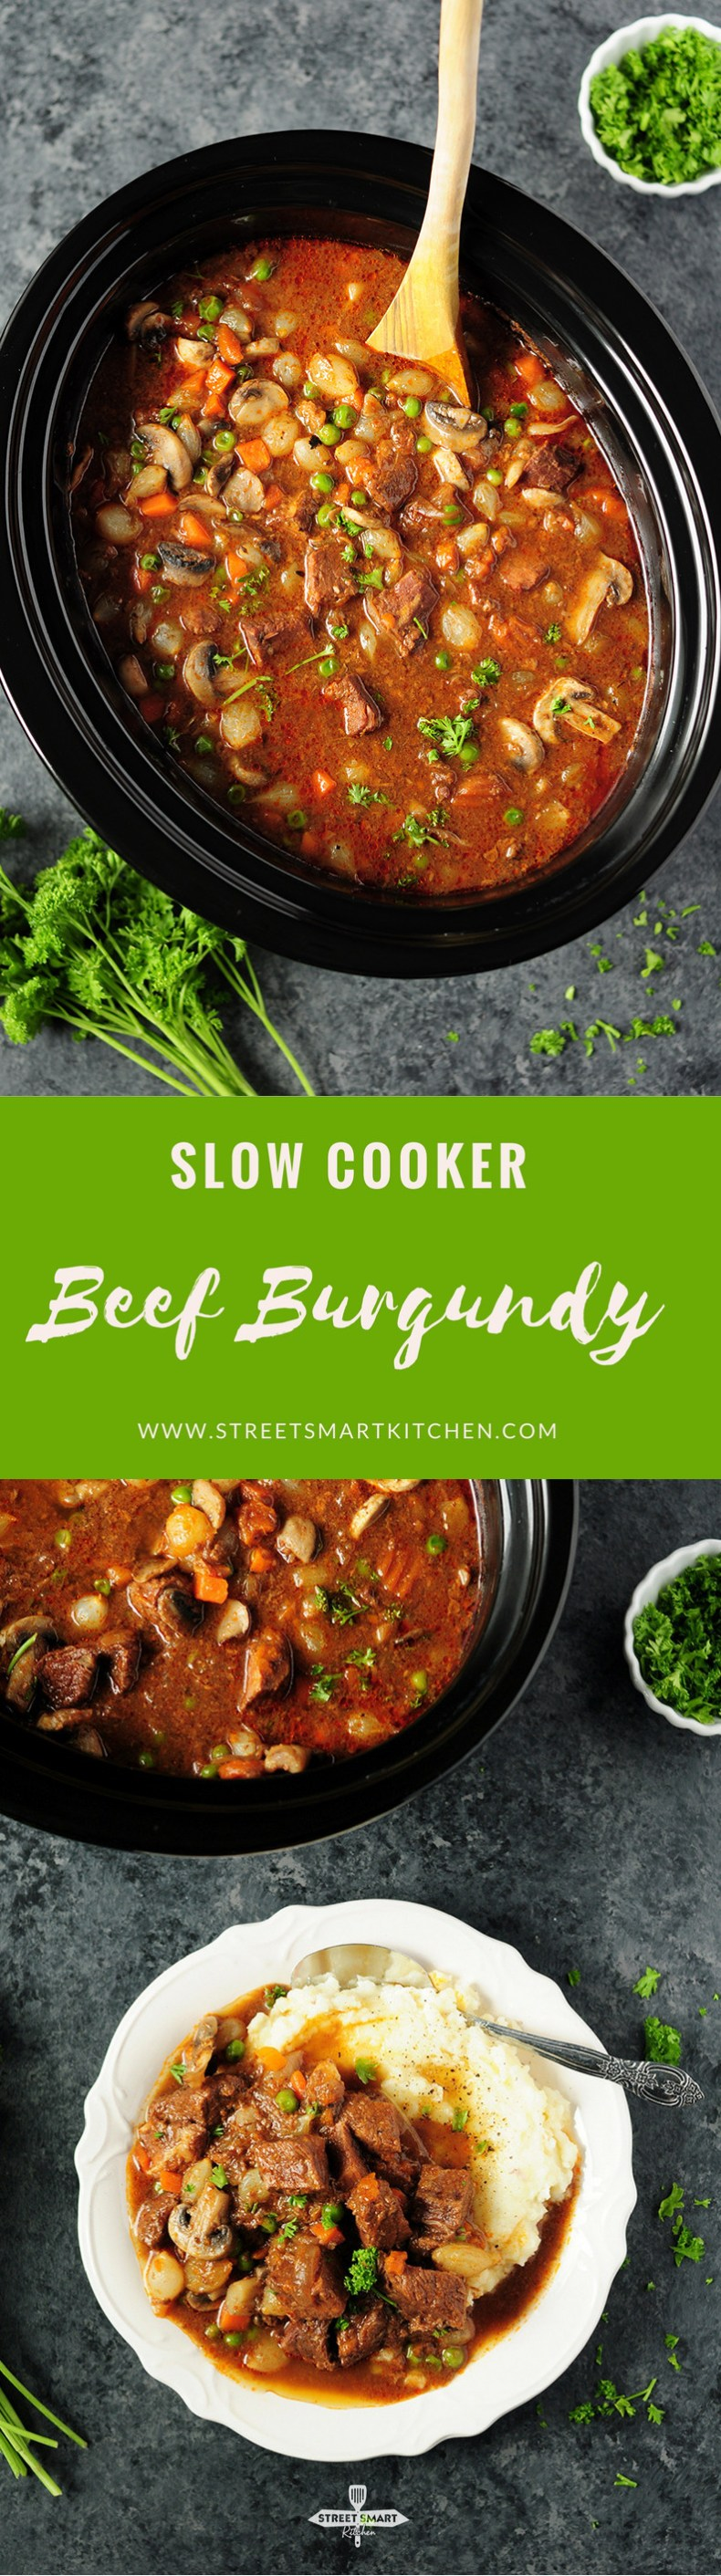 For a weeknight meal, this savory and scrumptious beef burgundy can be easily put together in a slow cooker to simplify the process!